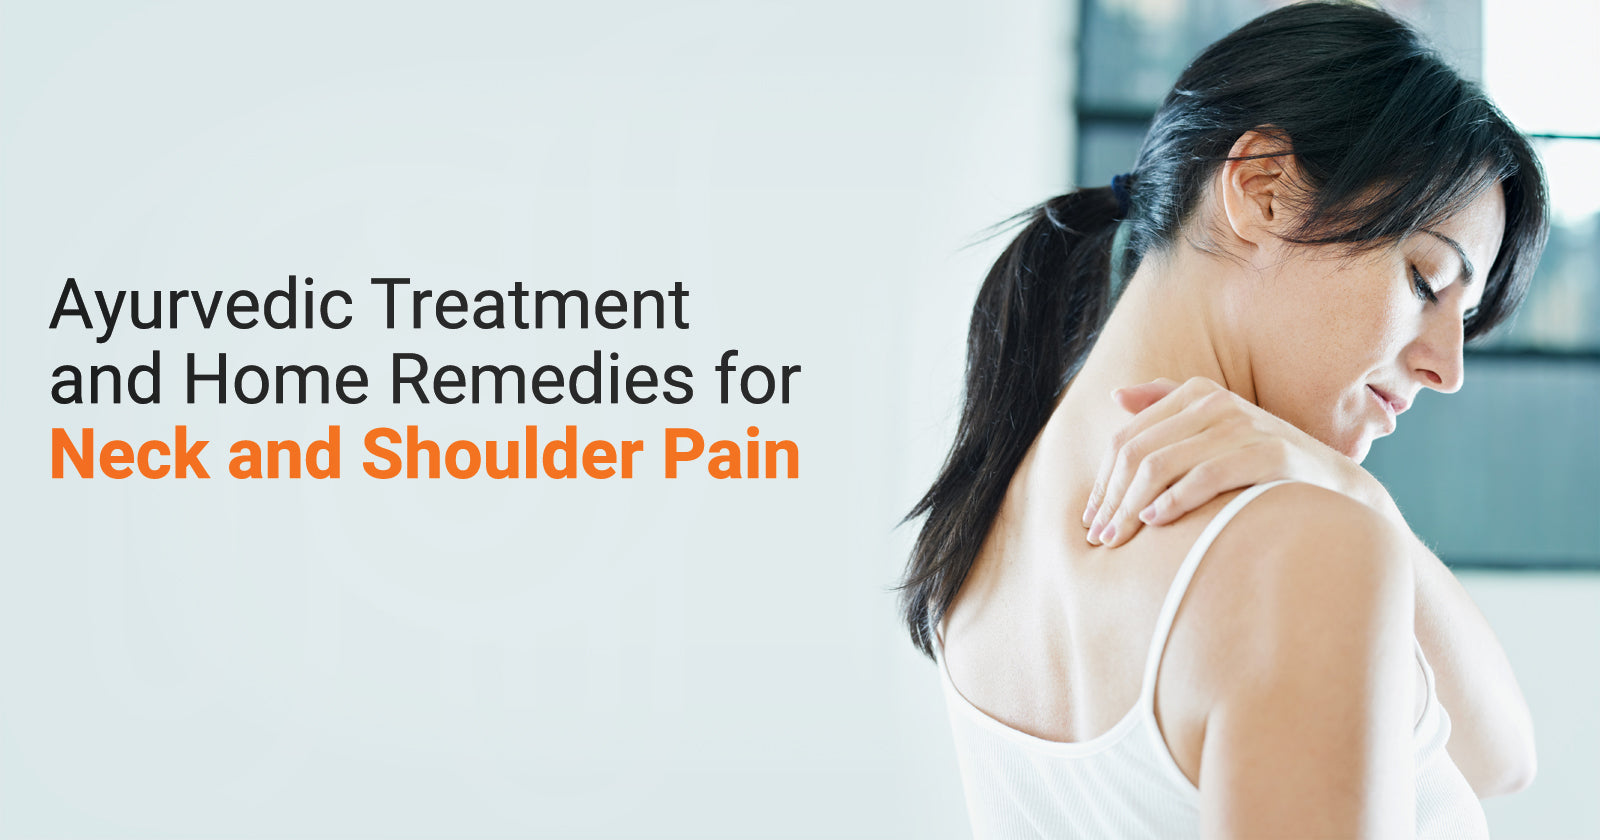 Ayurvedic Treatment and Home Remedies for Neck and Shoulder Pain